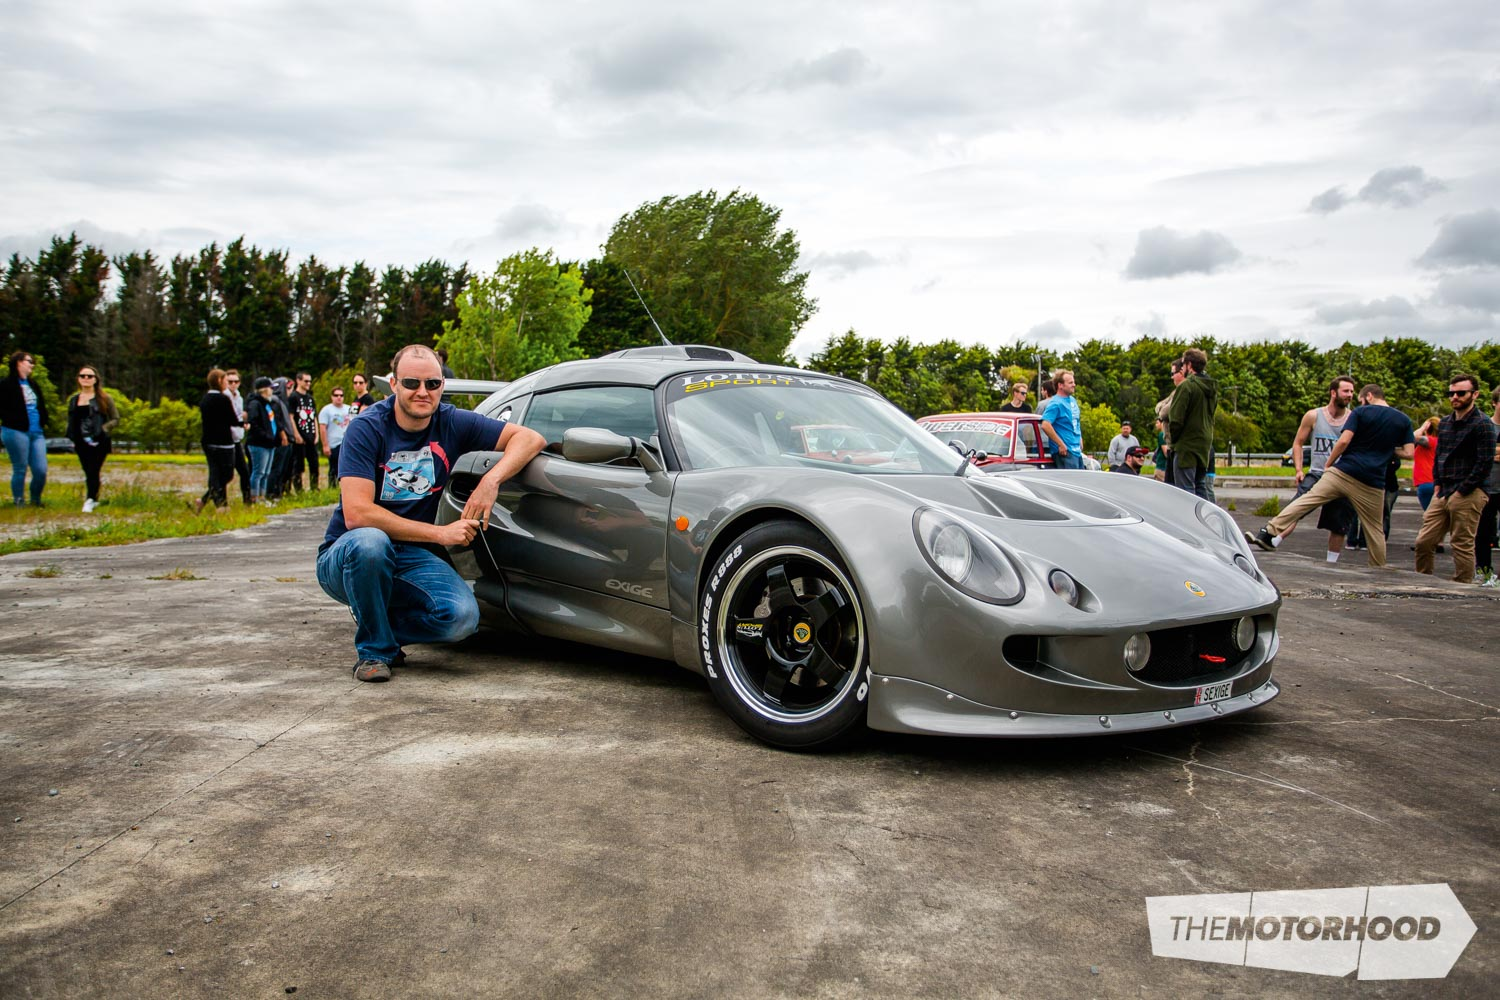 Name: George Maddever Car: 2001 Lotus Exige Type 111 Wheels: 16x7-inch/17x8.5-inch Podium FSL002 forged